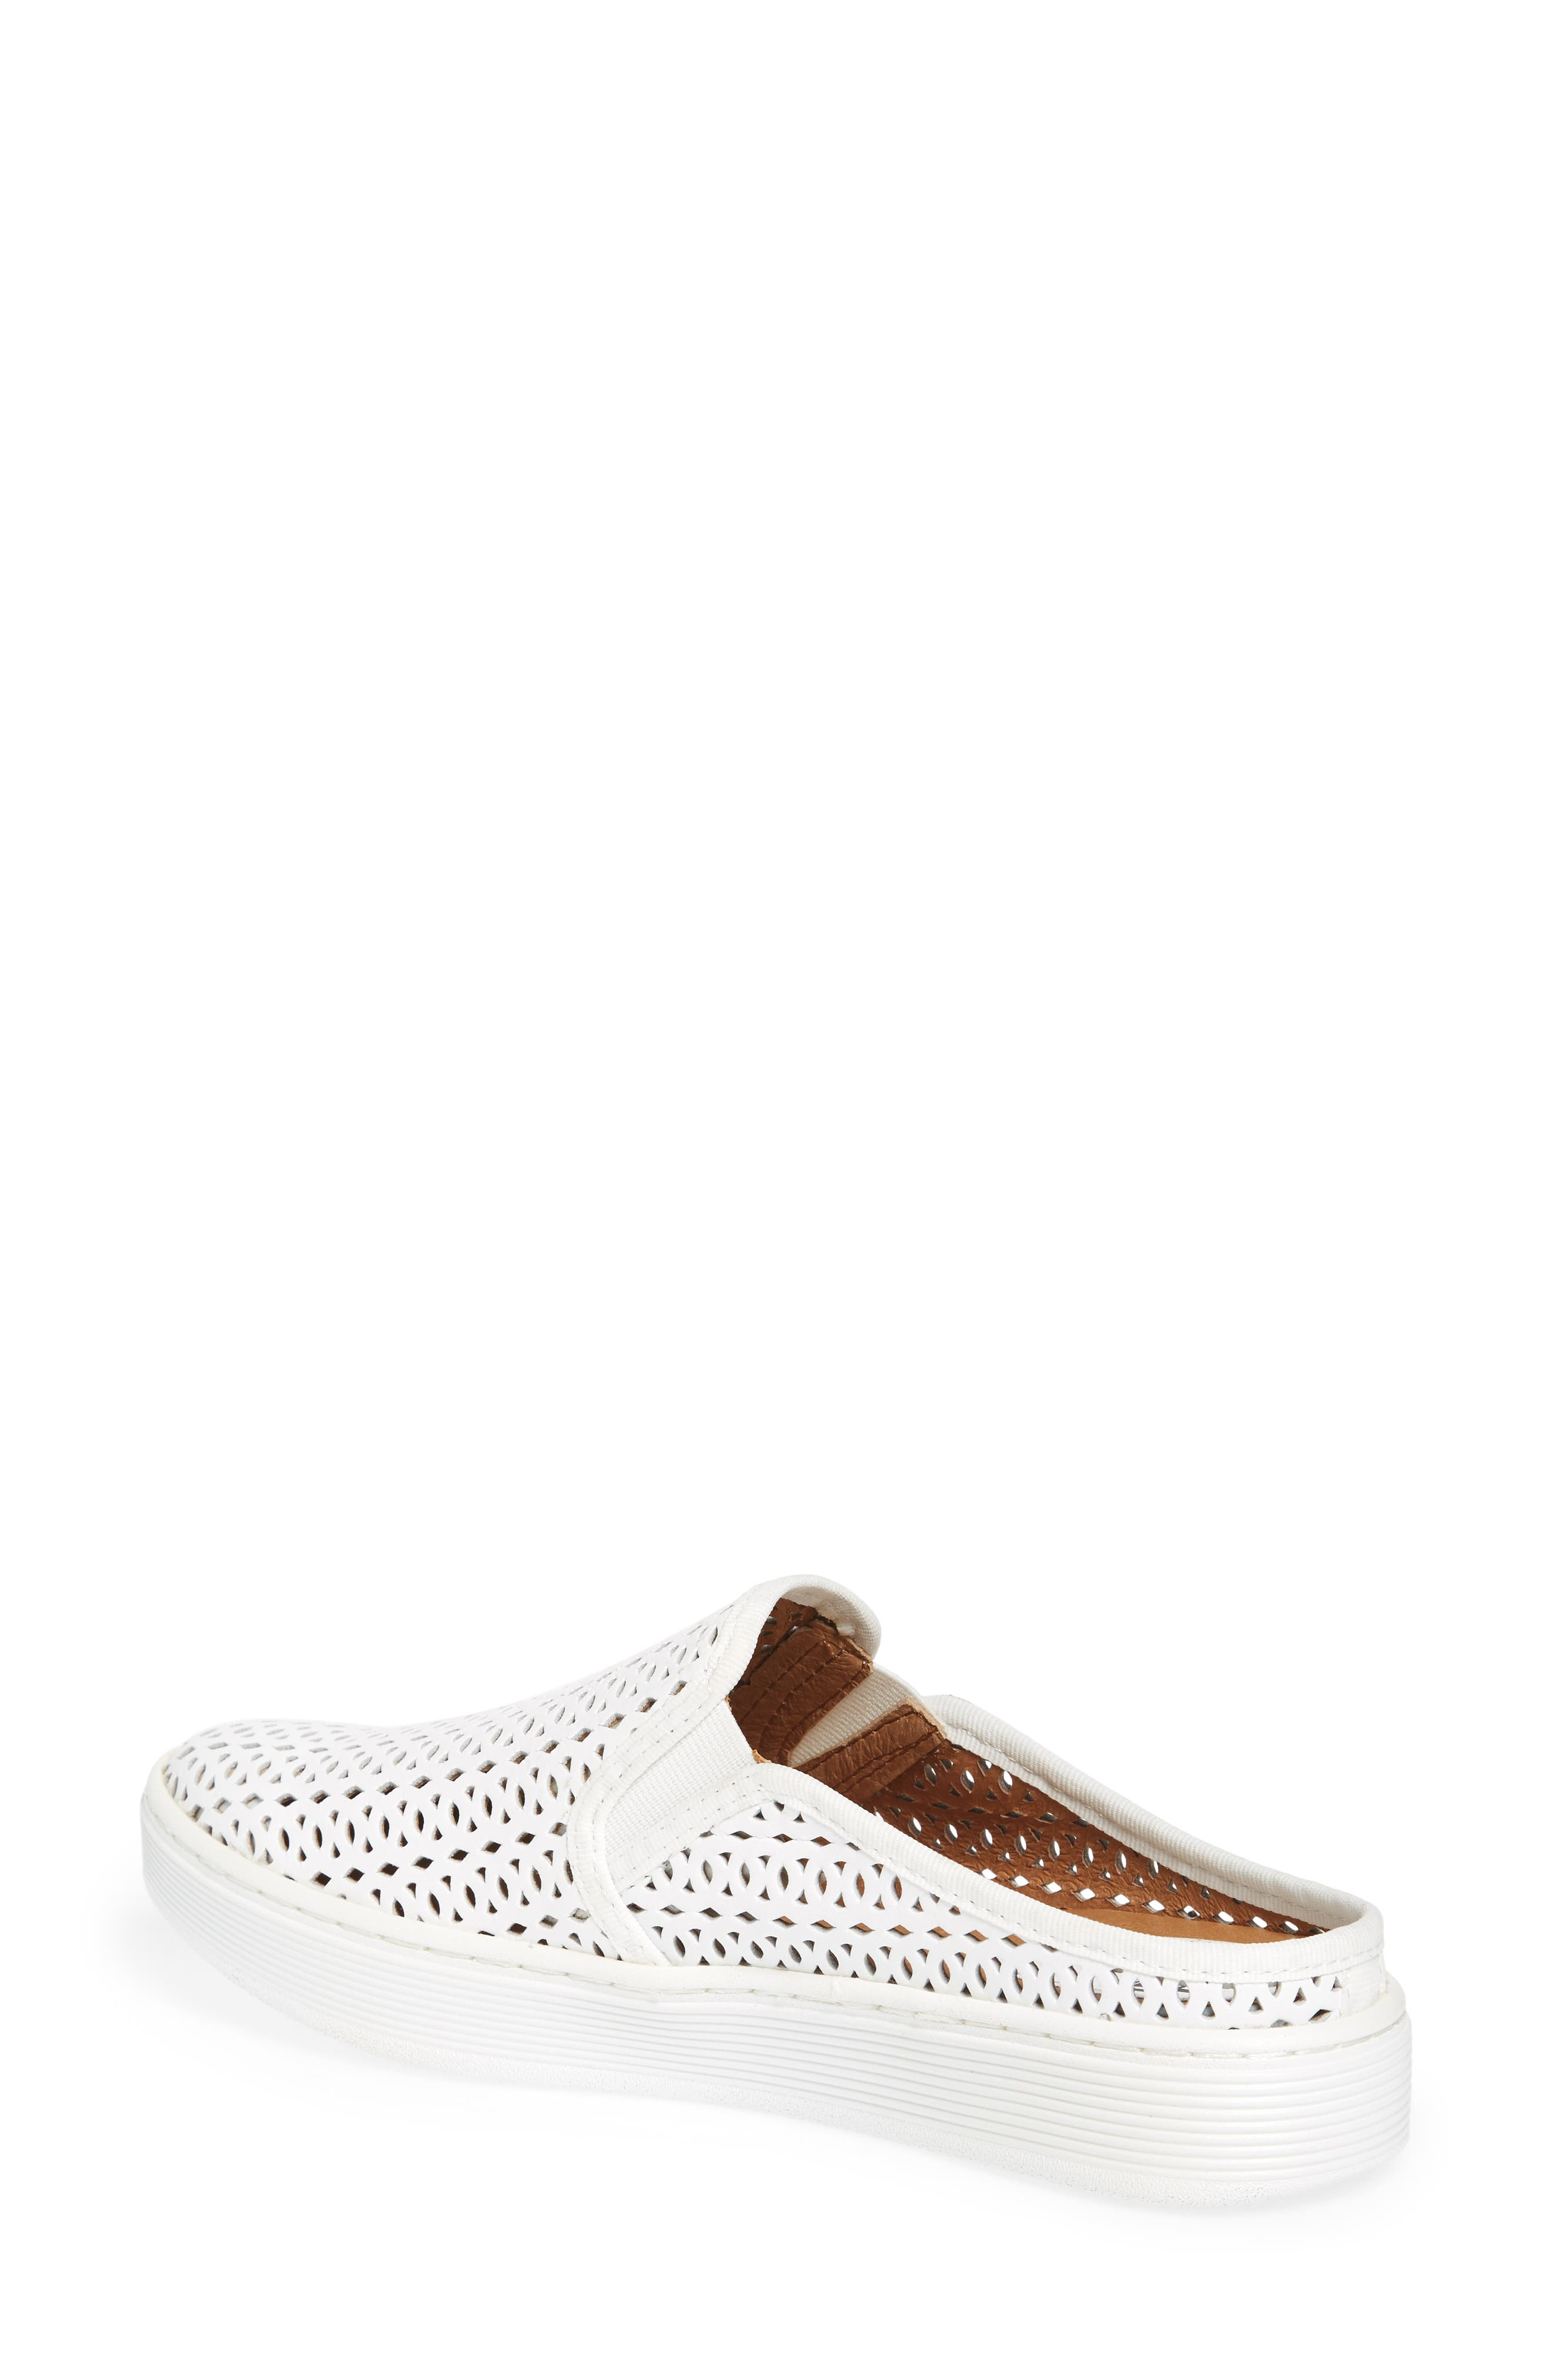 Somers II Sneaker,                             Alternate thumbnail 2, color,                             WHITE LEATHER